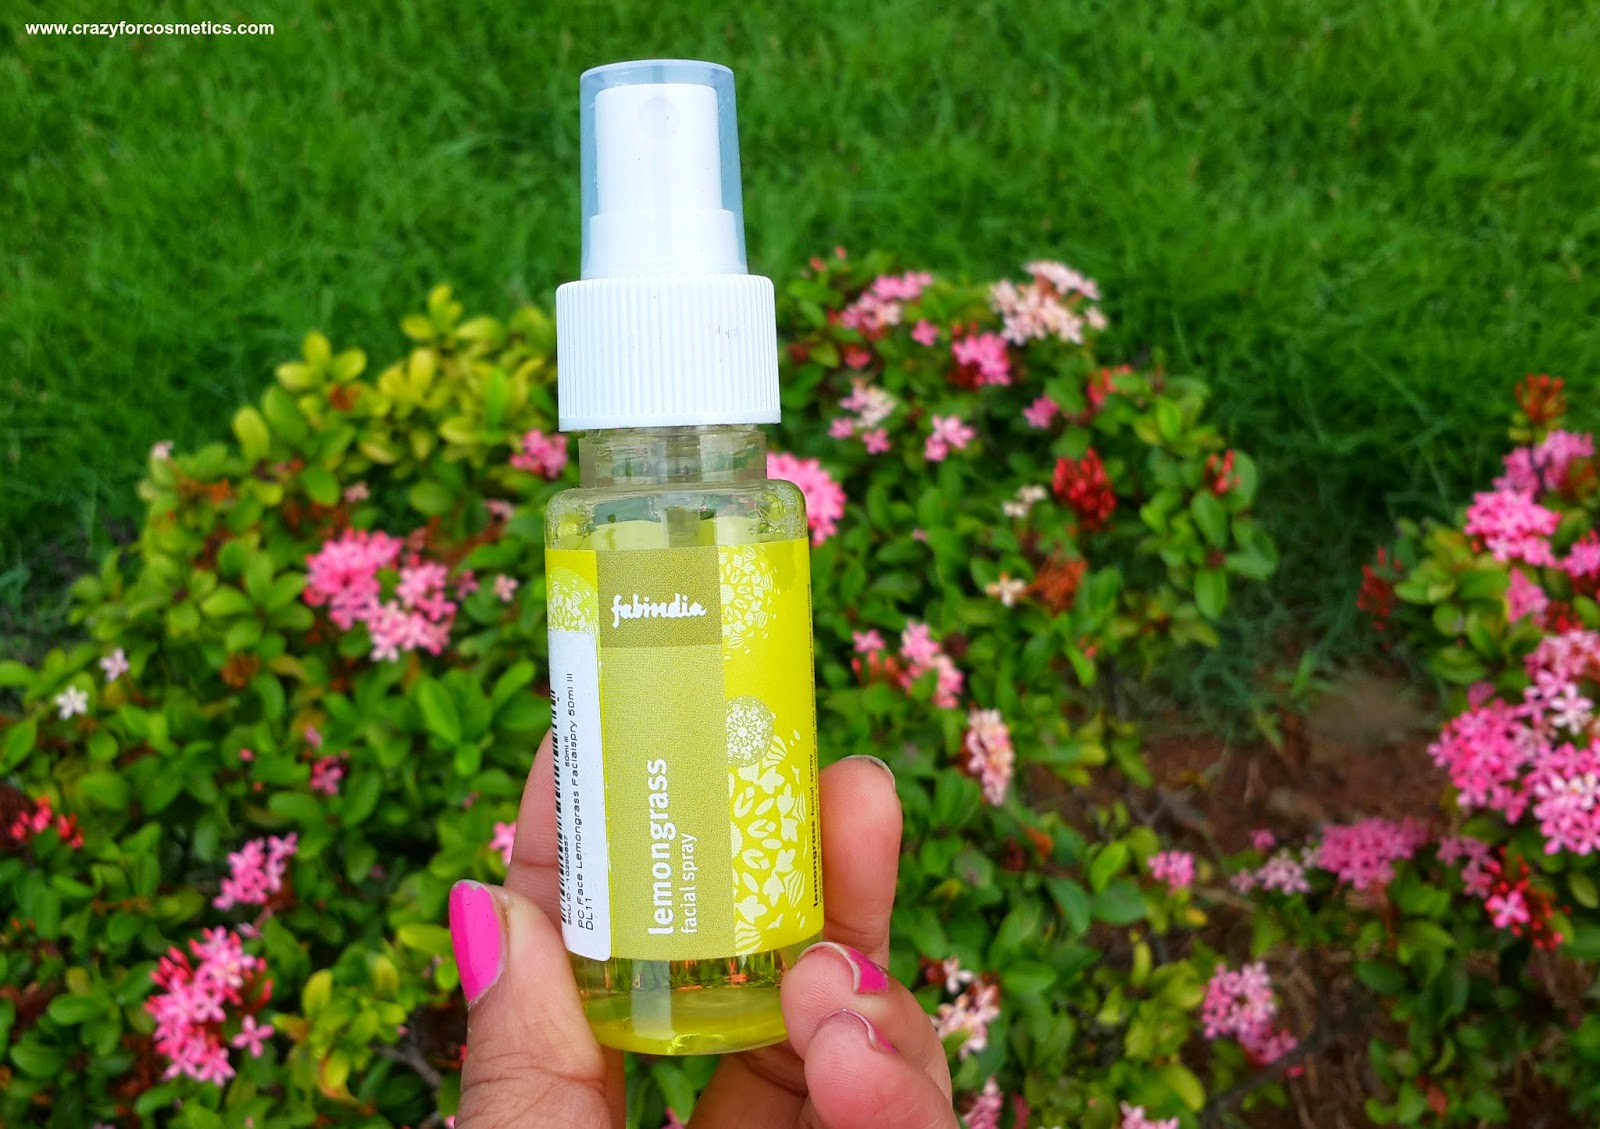 fabindia lemongrass facial spray packaging